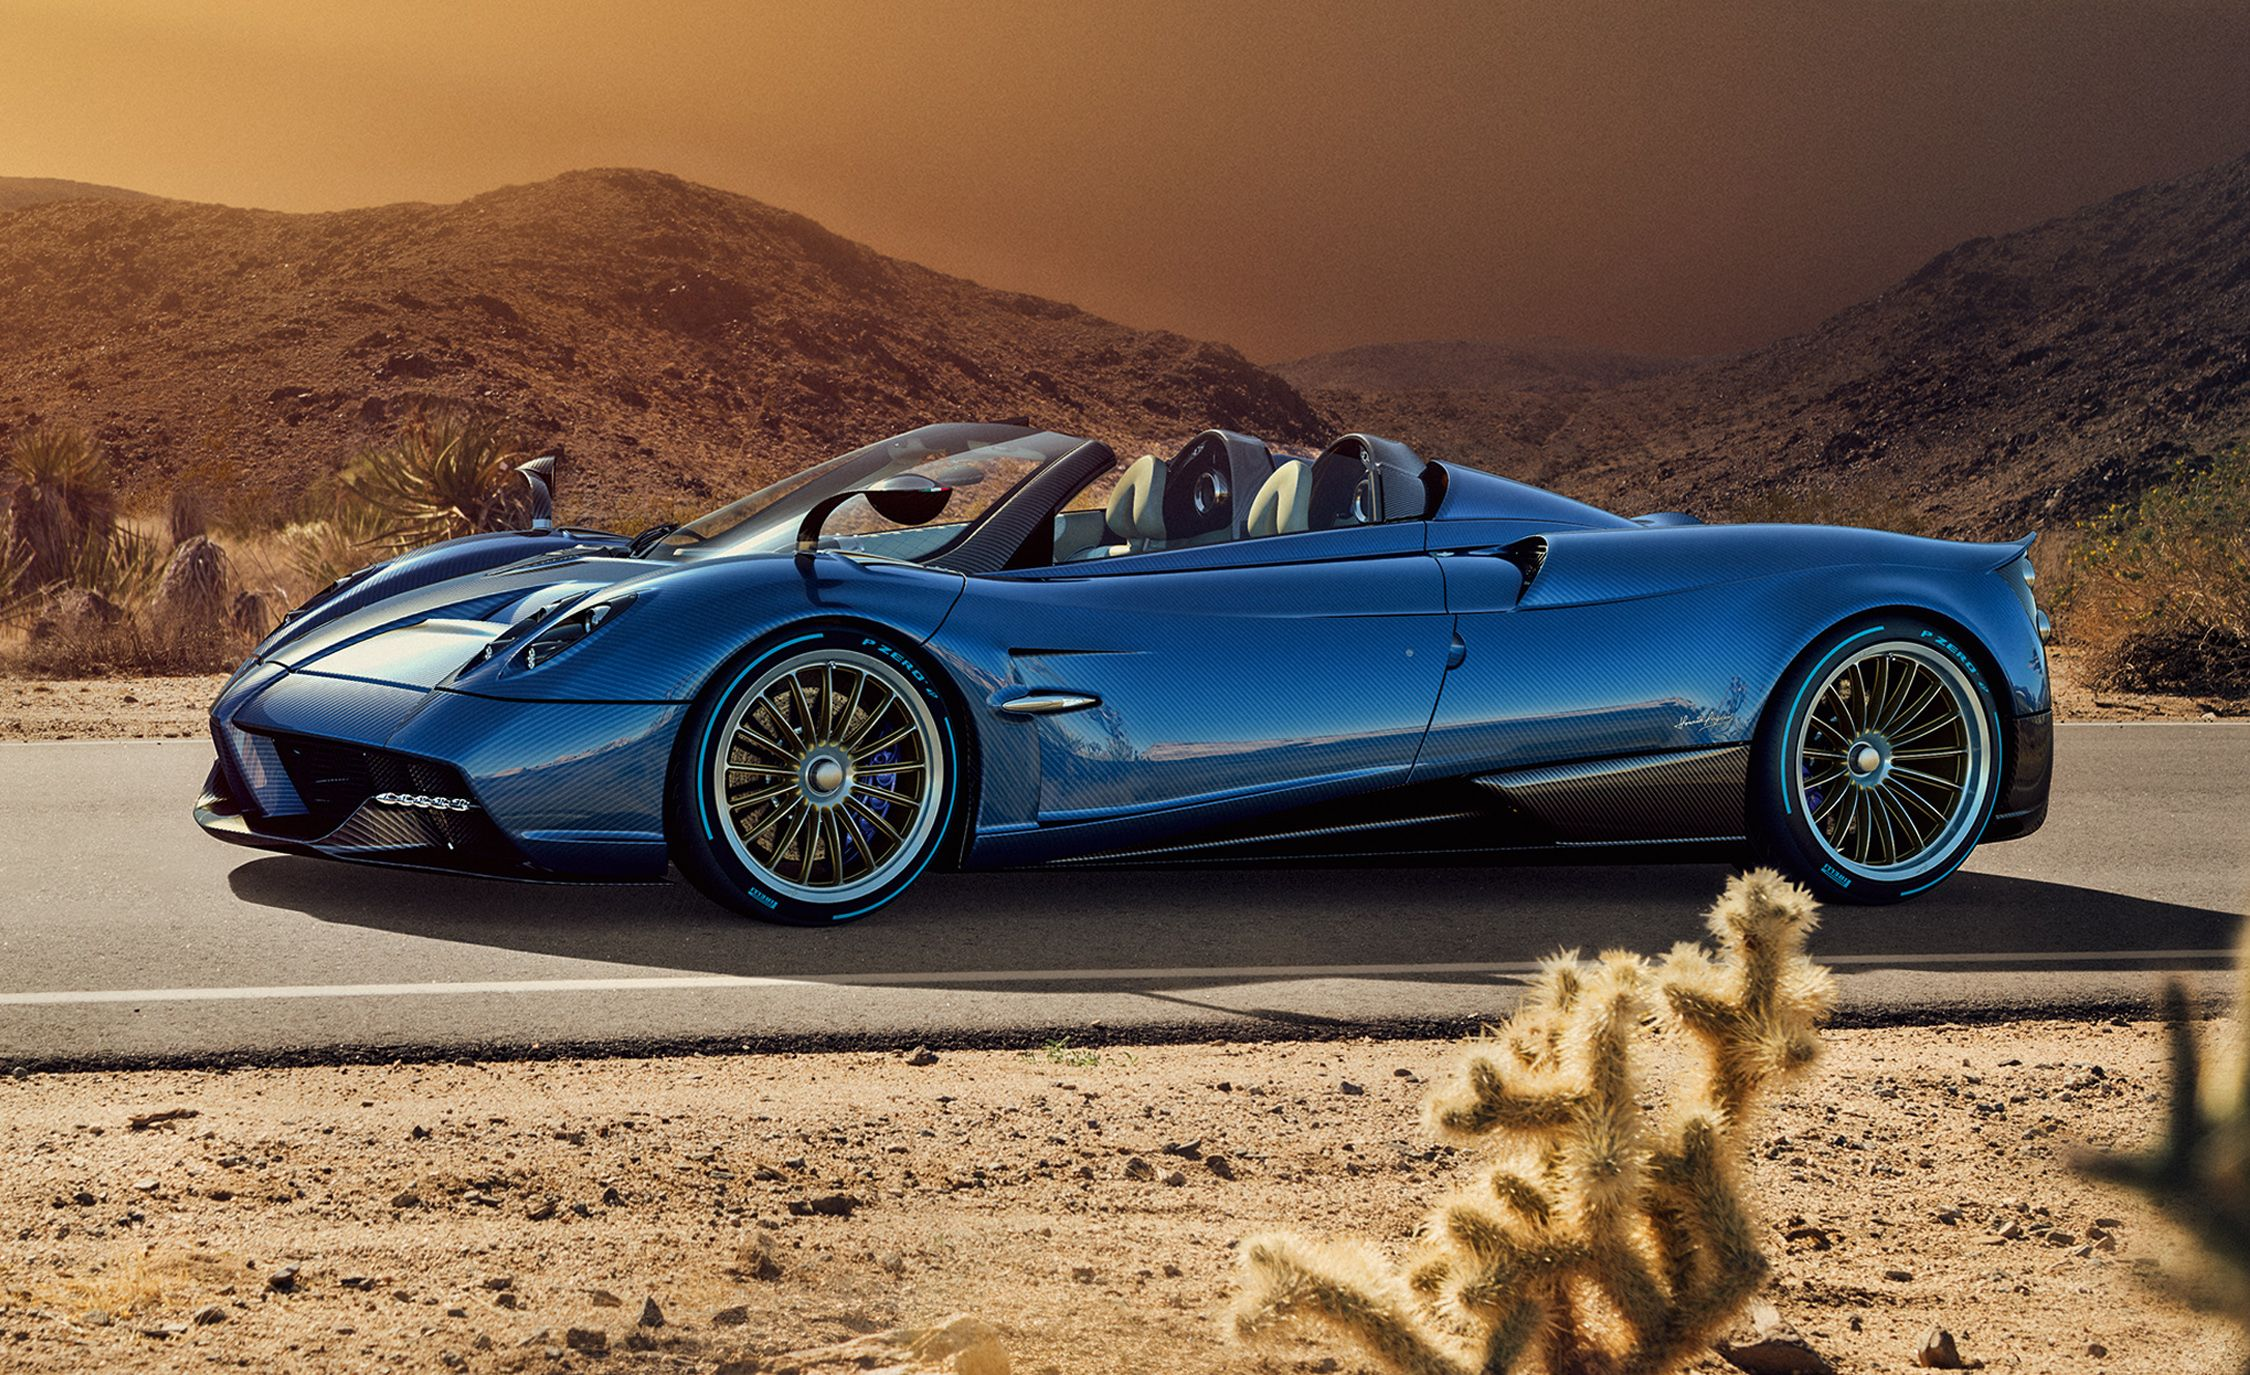 2017 Pagani Huayra Roadster: A Born Again Topless Supercar